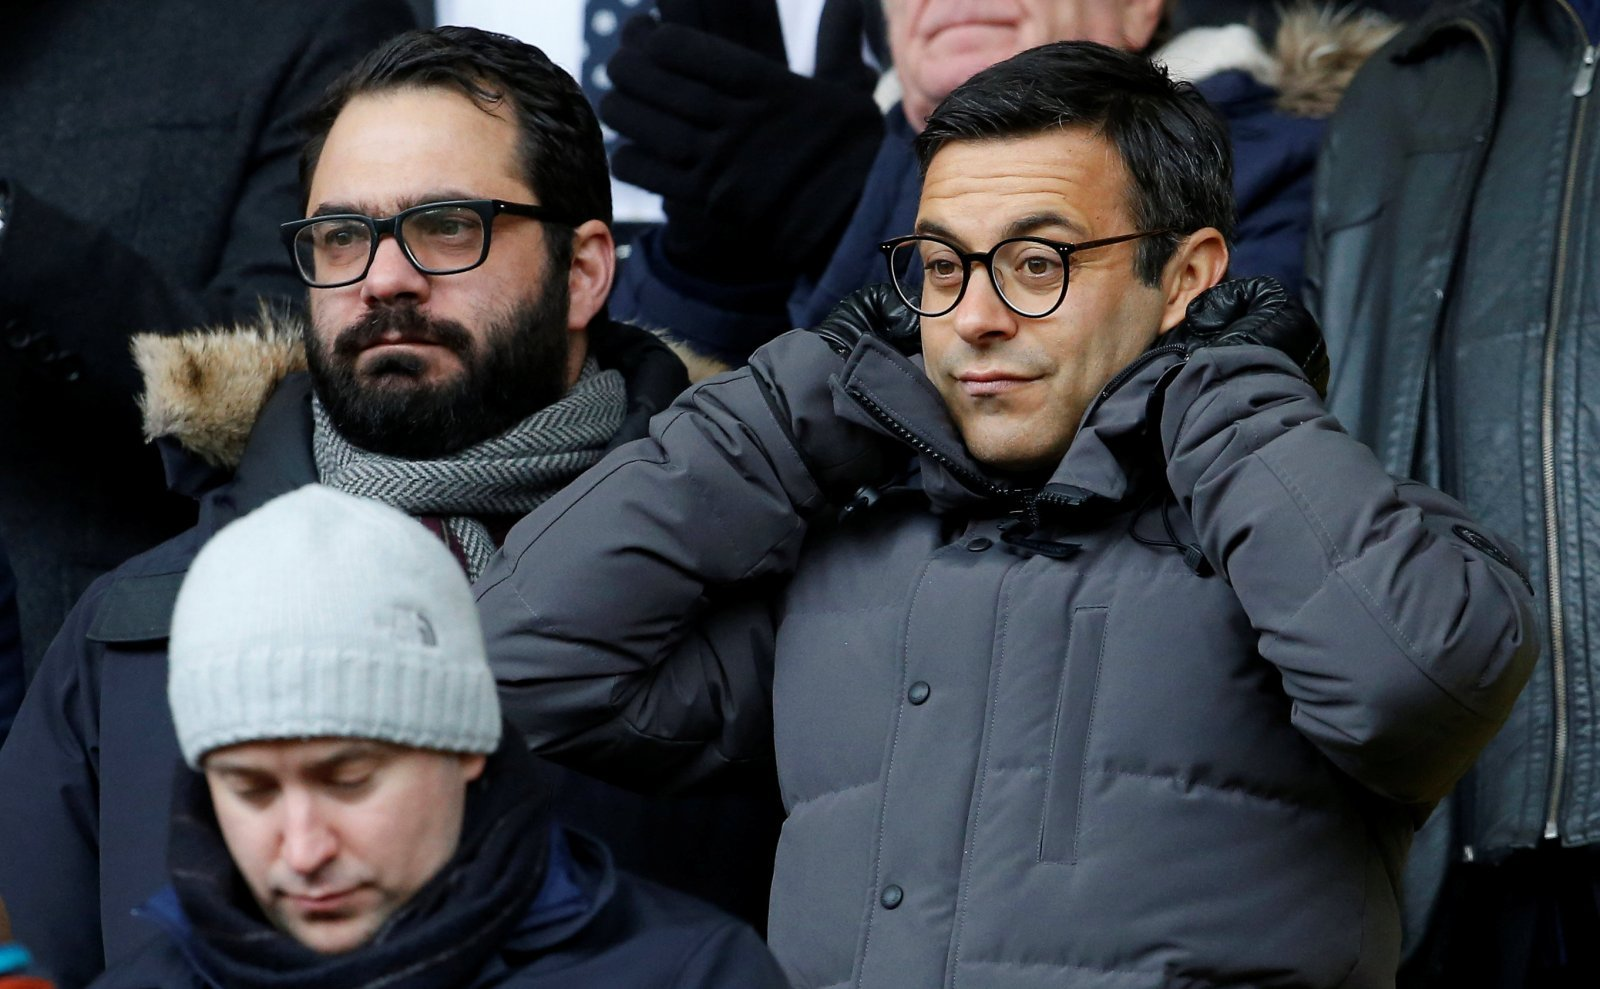 Radrizzani report makes Leeds United's end of season a nervy one